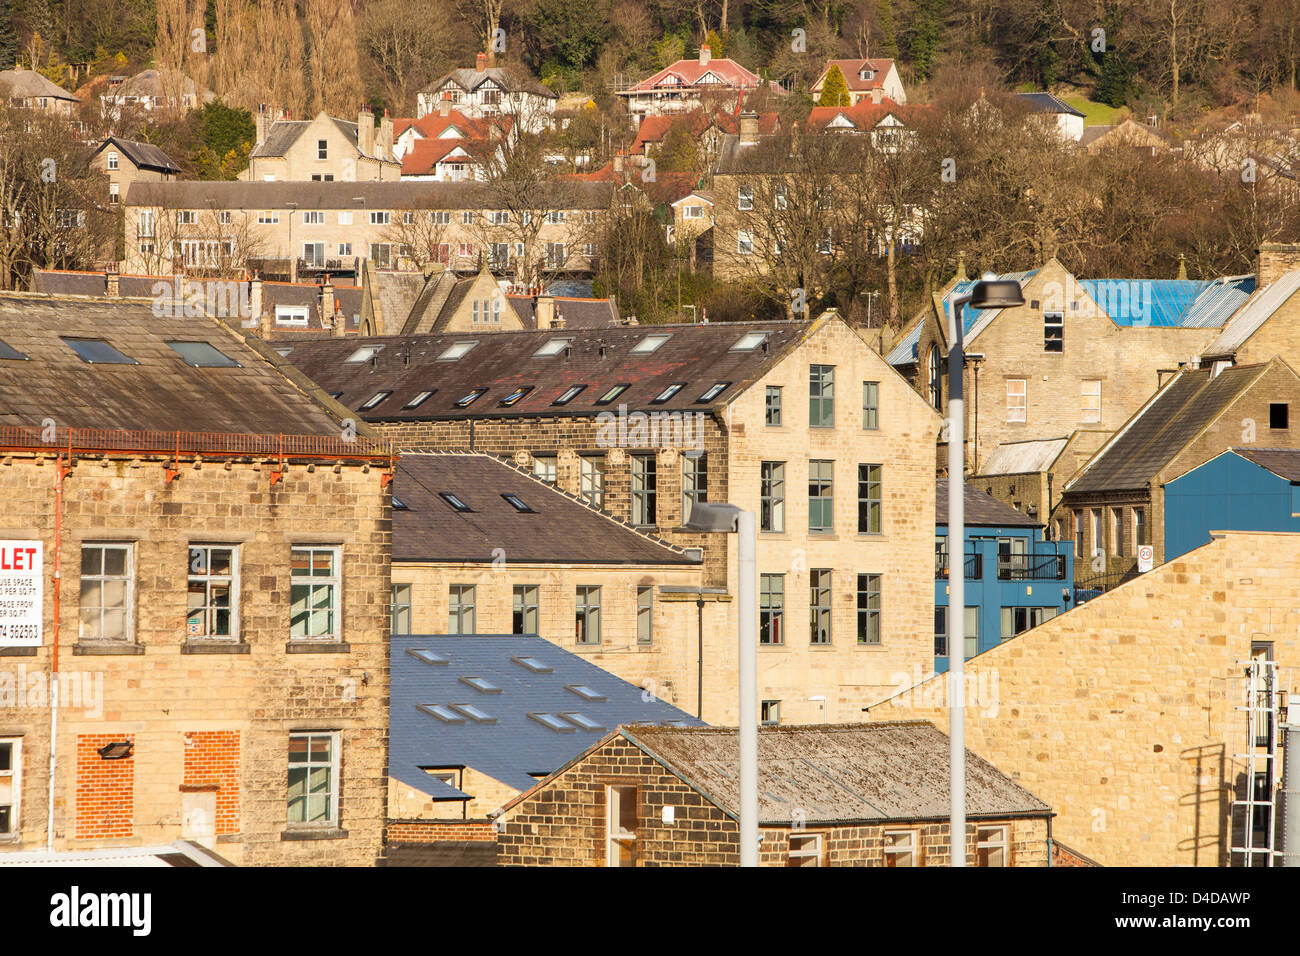 Old cotton mills in Bingley West Yorkshire, UK. - Stock Image